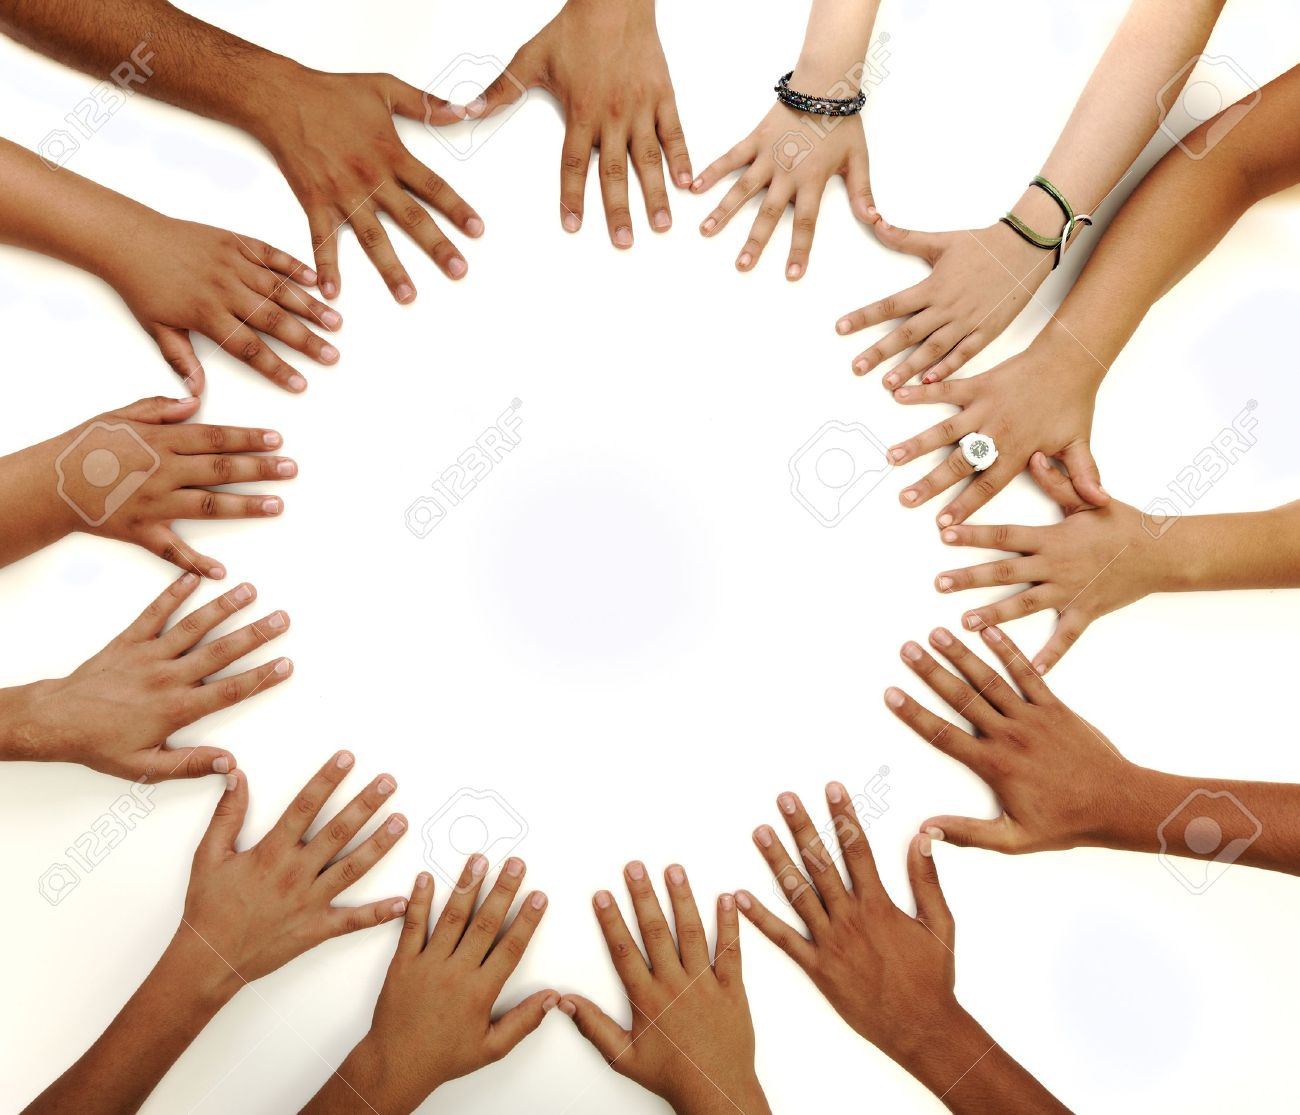 Conceptual symbol of multiracial children hands making a circle conceptual symbol of multiracial children hands making a circle on white background with a copy space biocorpaavc Gallery